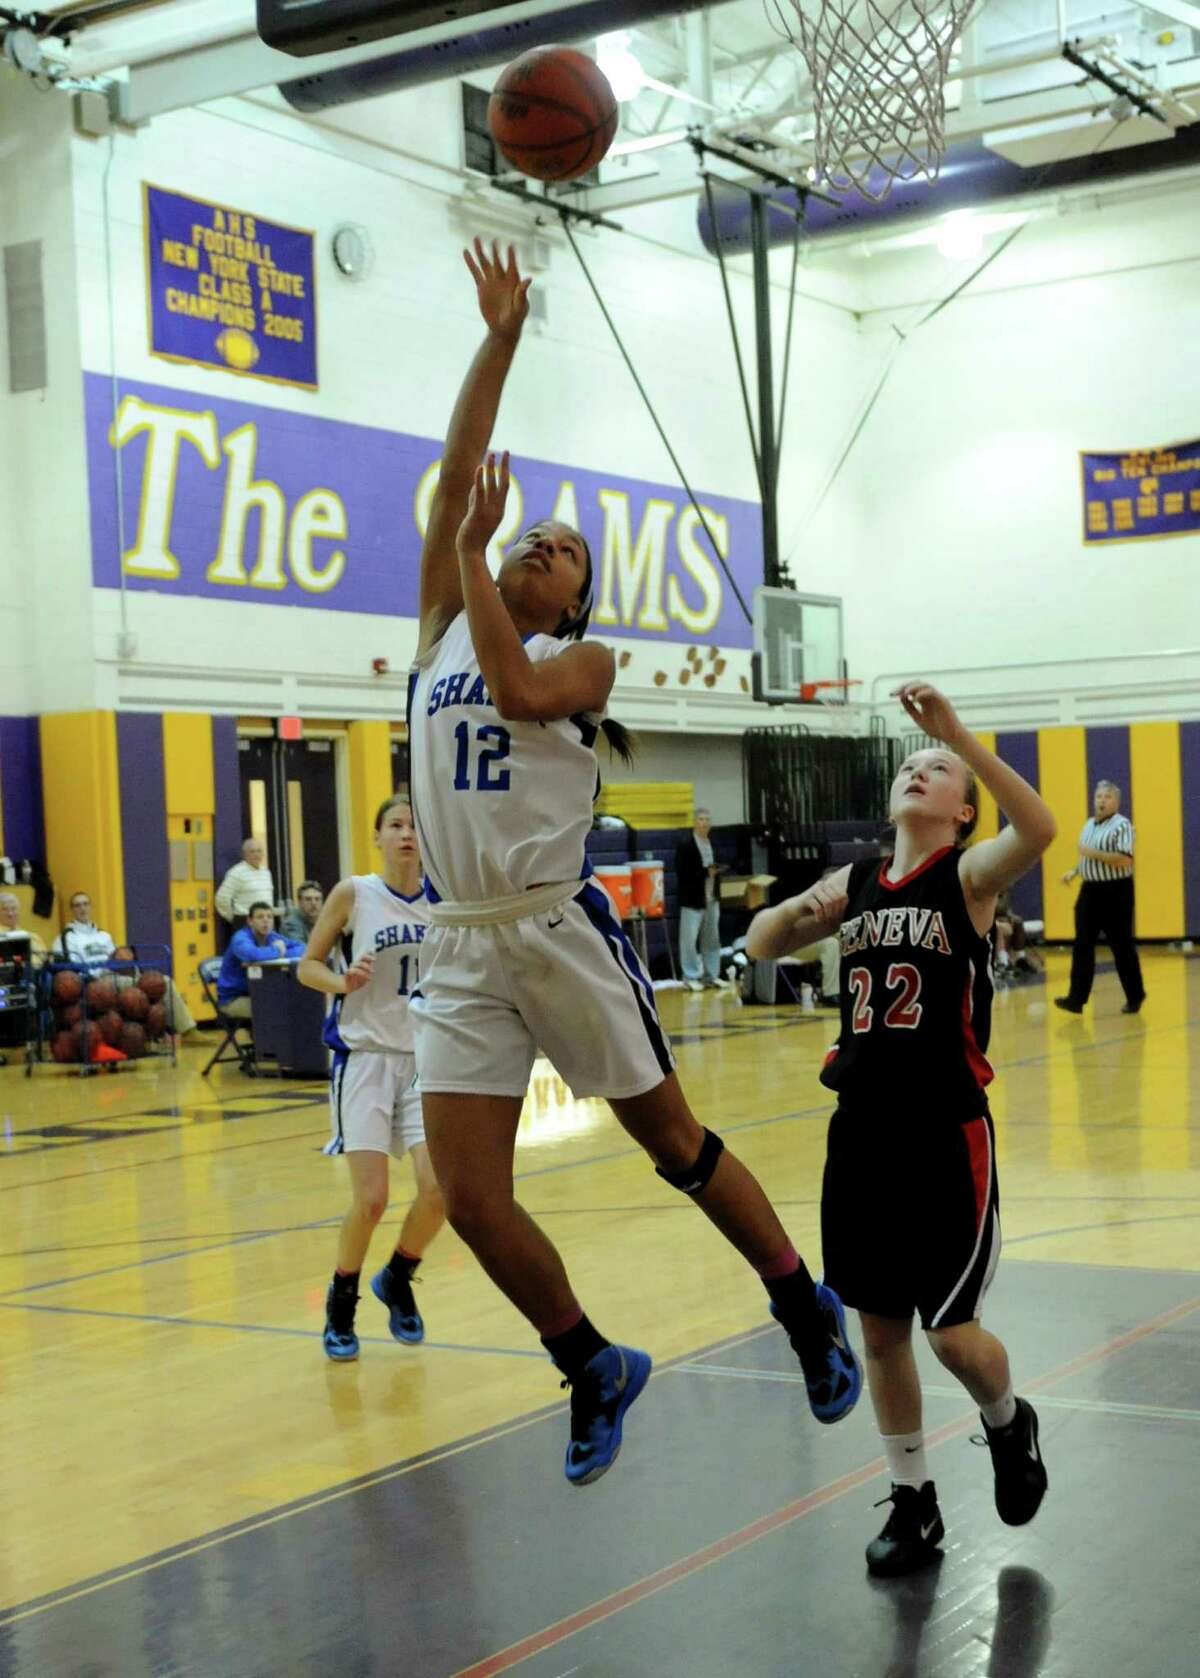 Shaker's Madison Rowland goes in for a basket during their girls high school basketball game against Geneva in Amsterdam, N.Y. Saturday Dec. 29, 2012. (Michael P. Farrell/Times Union)